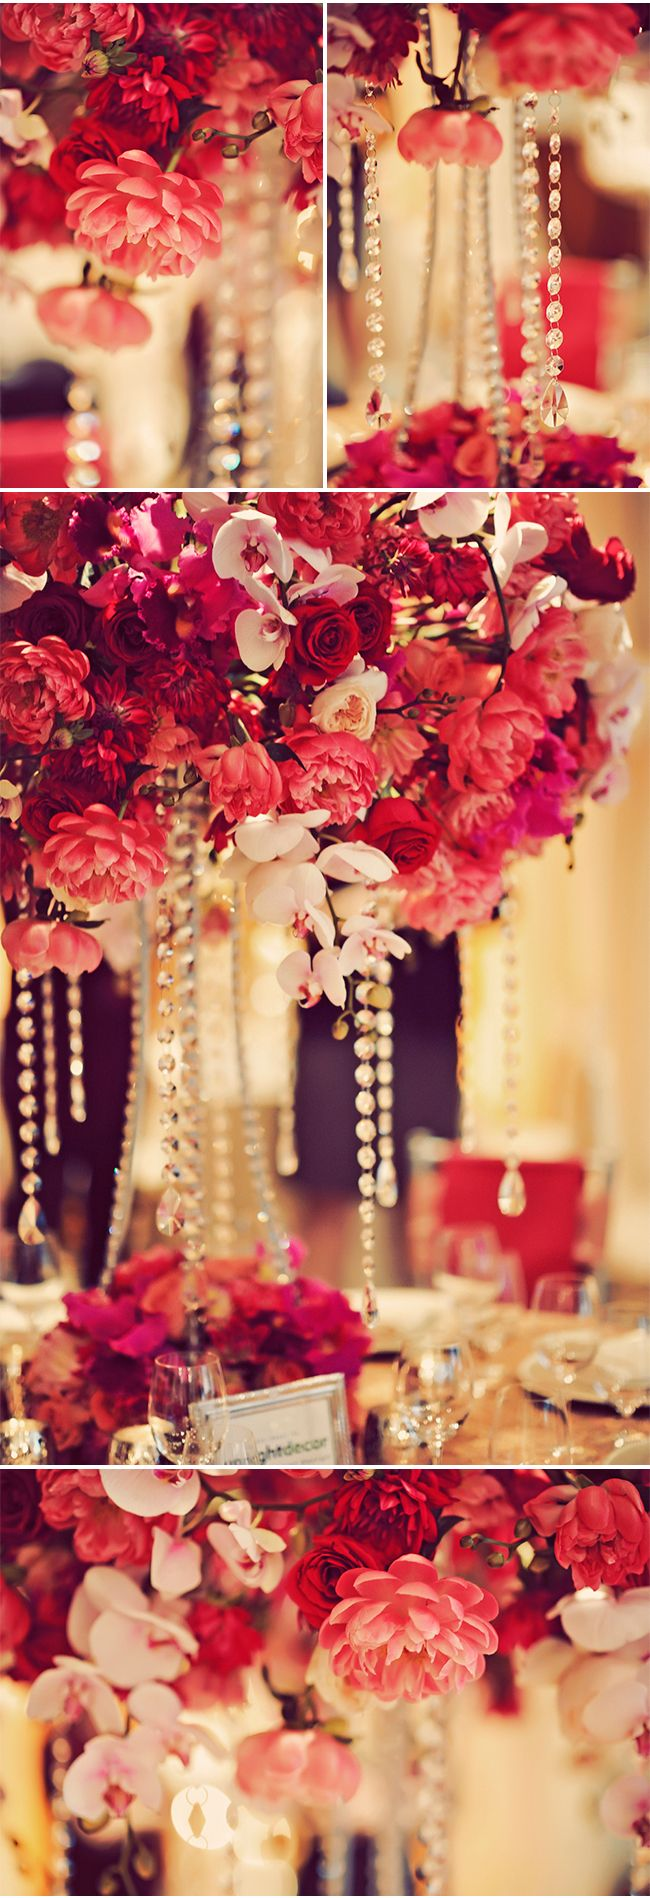 1009 best centerpieces images on pinterest wedding centerpieces red and pink blooms dripping in crystals creme de la creme a bridal show junglespirit Gallery